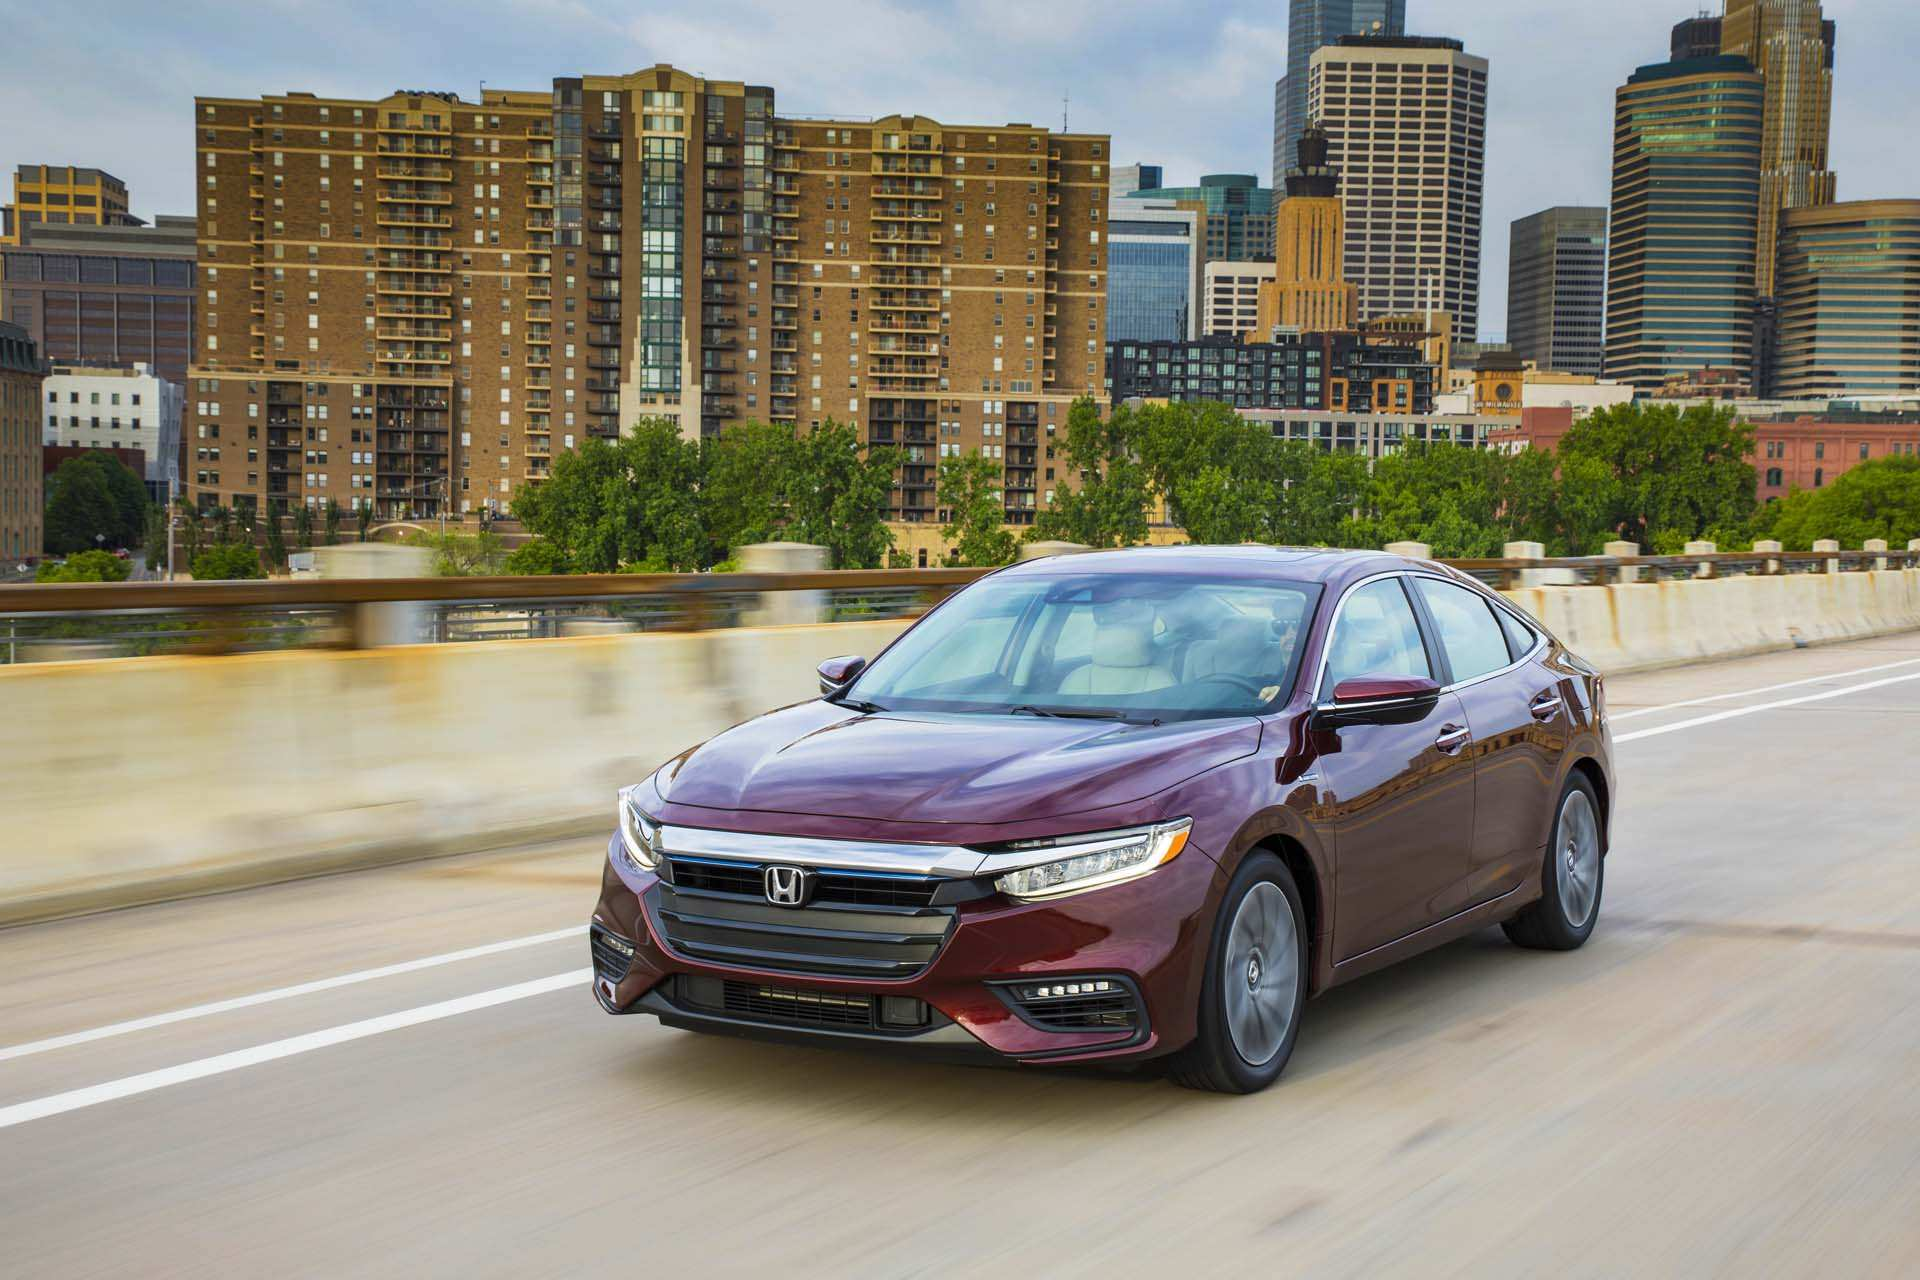 75 Best Review Honda Insight Hatchback 2020 First Drive by Honda Insight Hatchback 2020